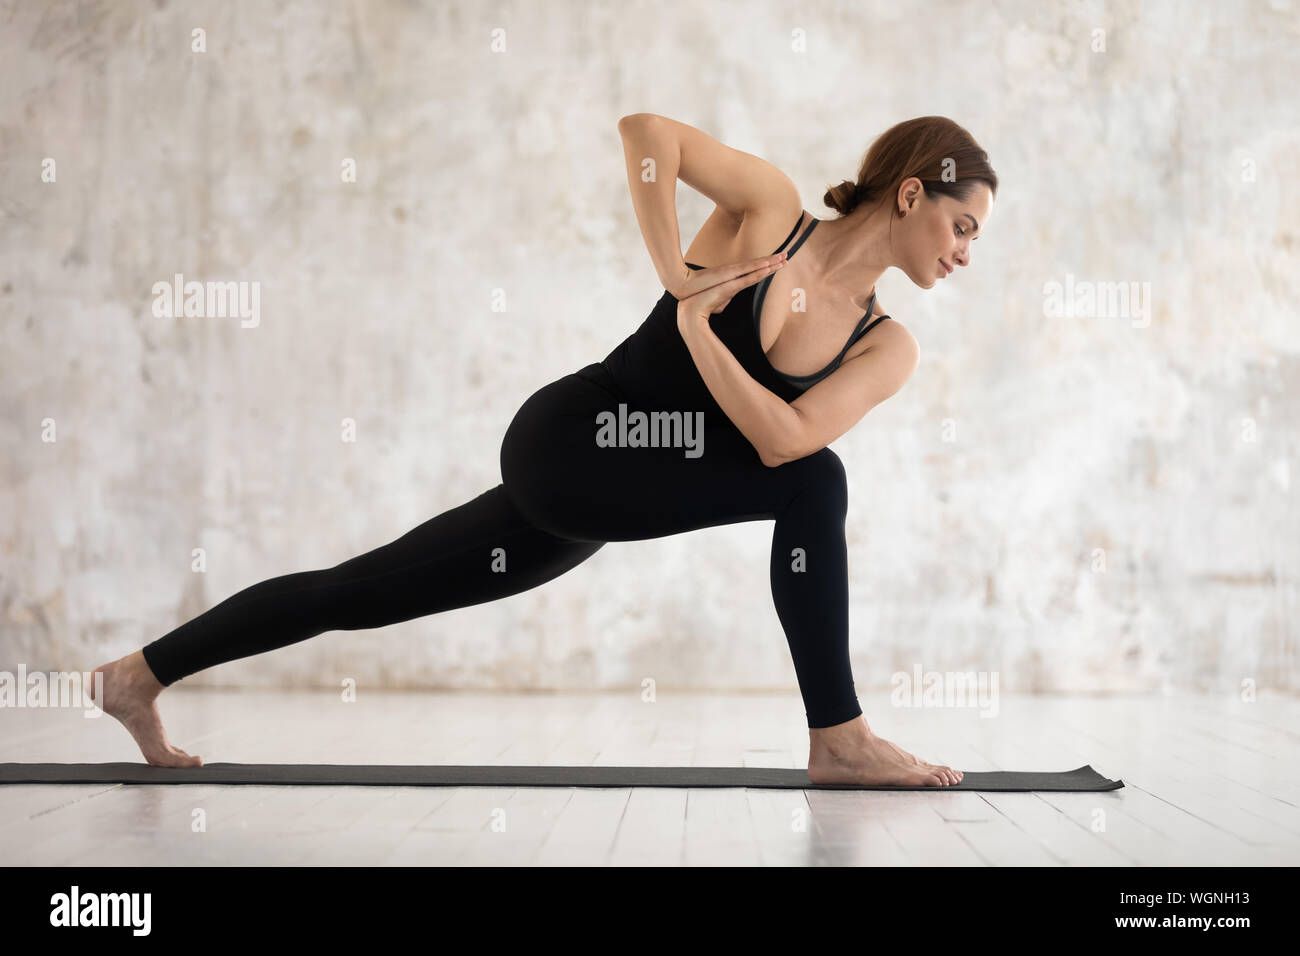 Standing Twist Pose High Resolution Stock Photography and Images